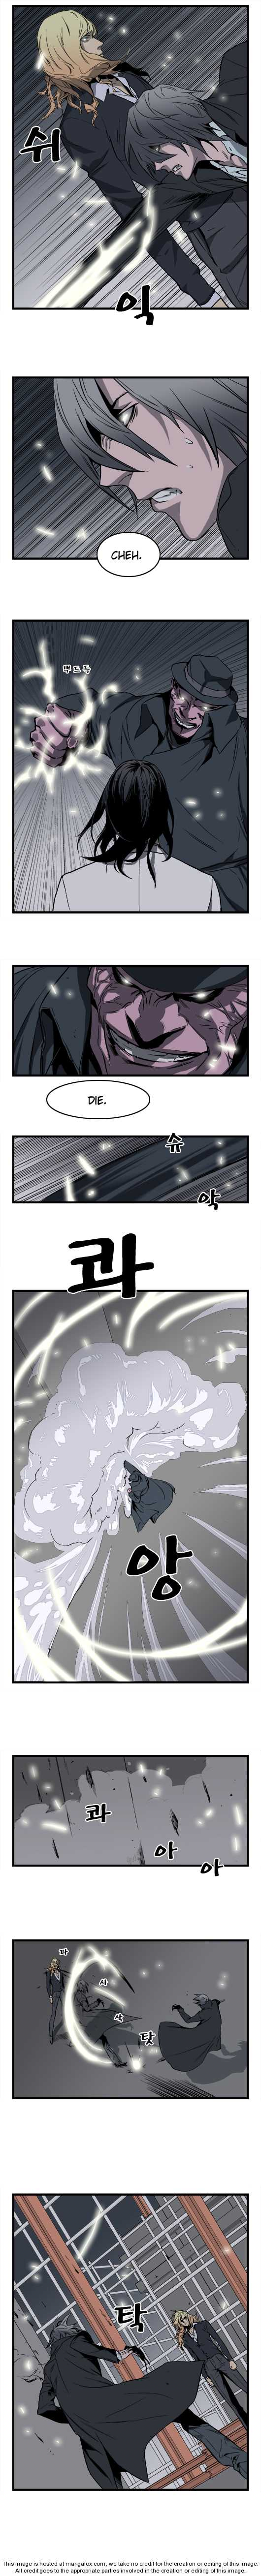 Noblesse 32 Page 2